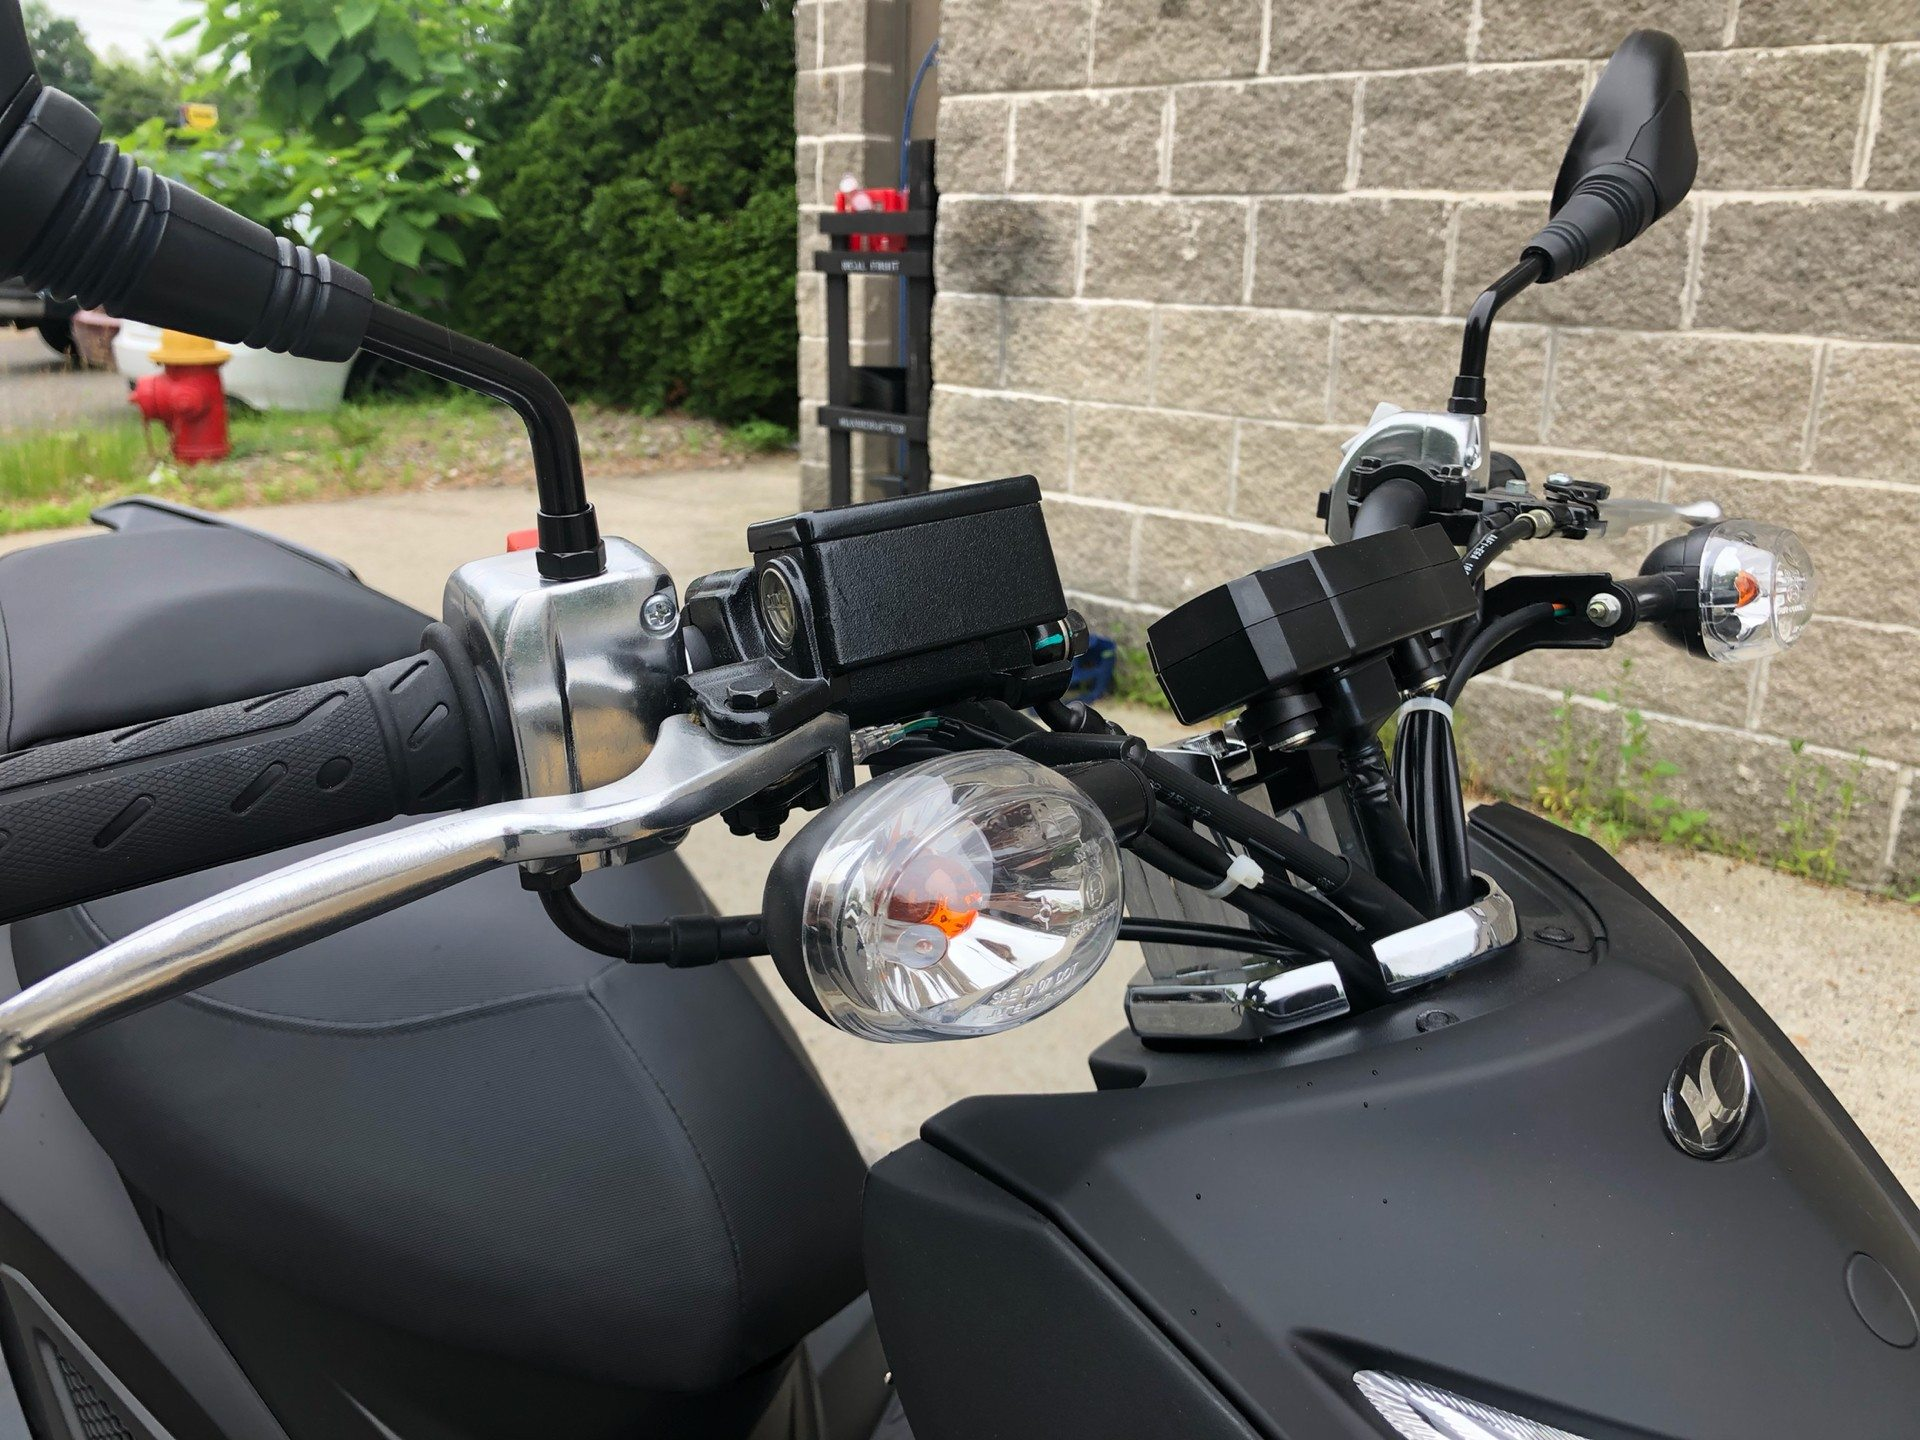 2019 Kymco Super 8 50X in Enfield, Connecticut - Photo 10